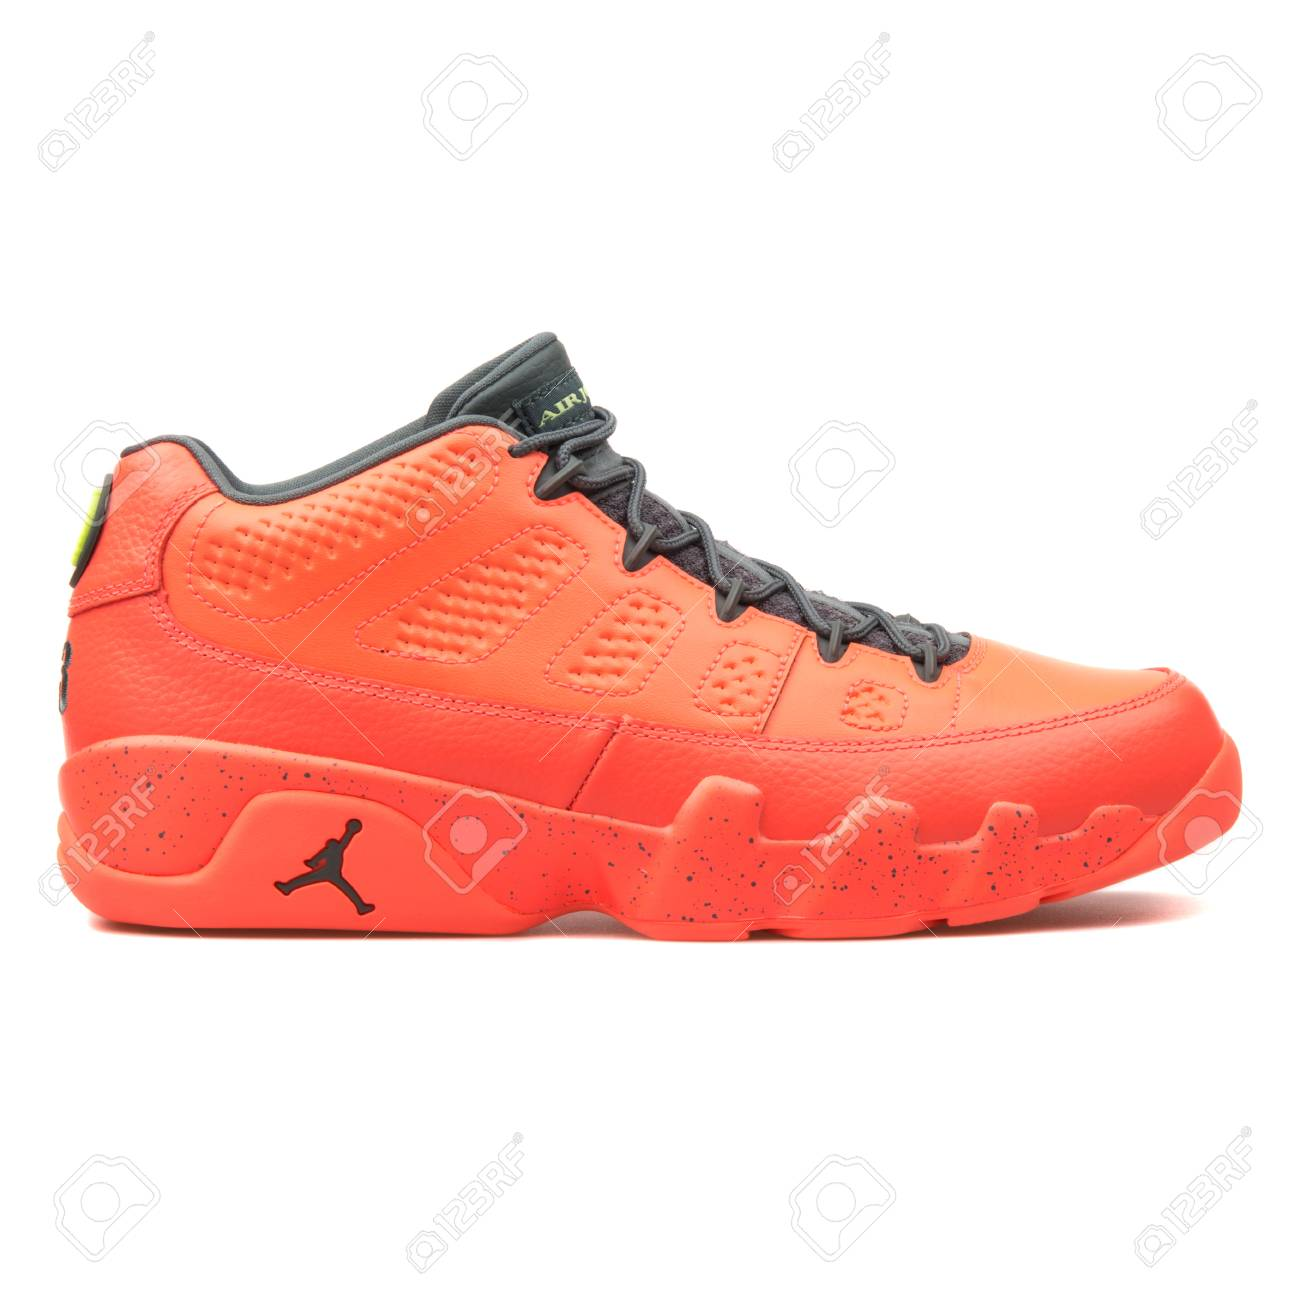 reputable site 6322c dccb5 Stock Photo - VIENNA, AUSTRIA - JUNE 14, 2017  Nike Air Jordan 9 Retro Low  bright mango sneaker isolated on grey background